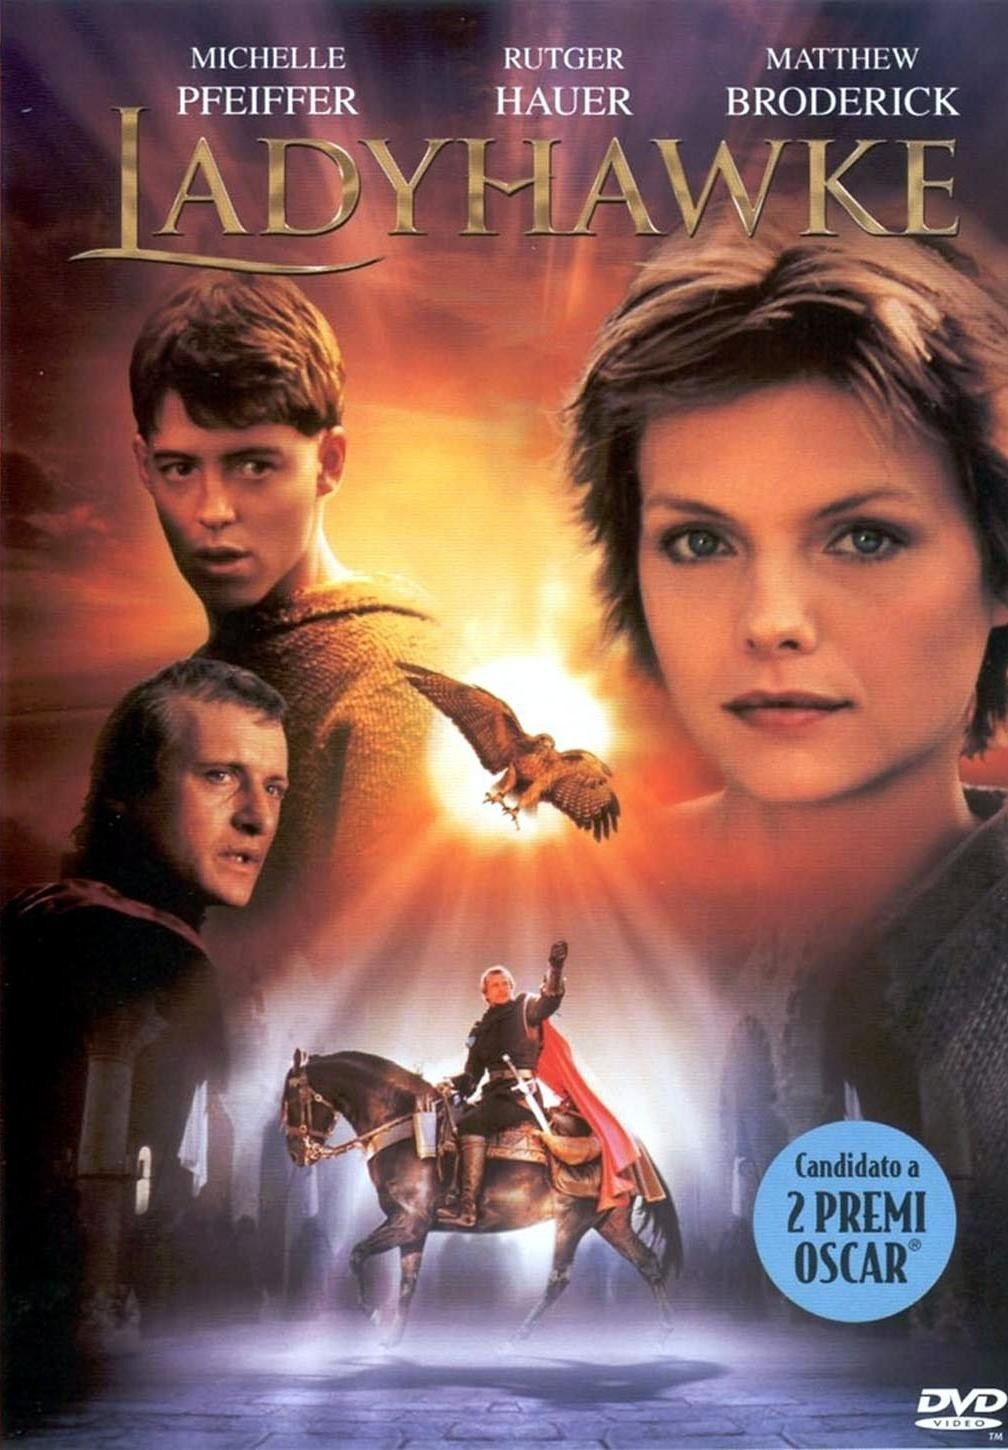 Image result for ladyhawke film